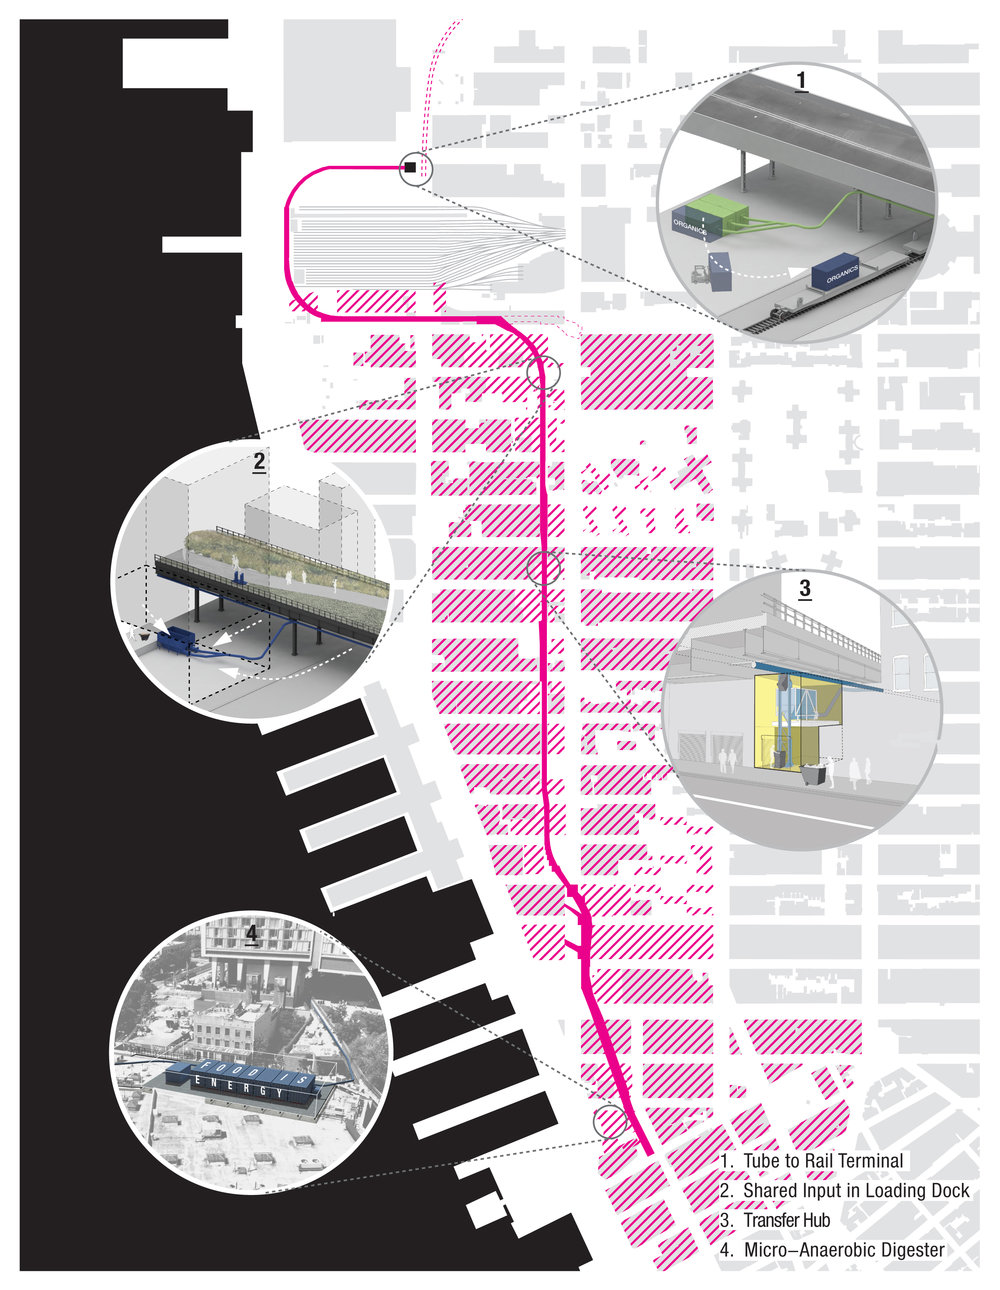 High Line Corridor Network, Image: Caliper Architecture